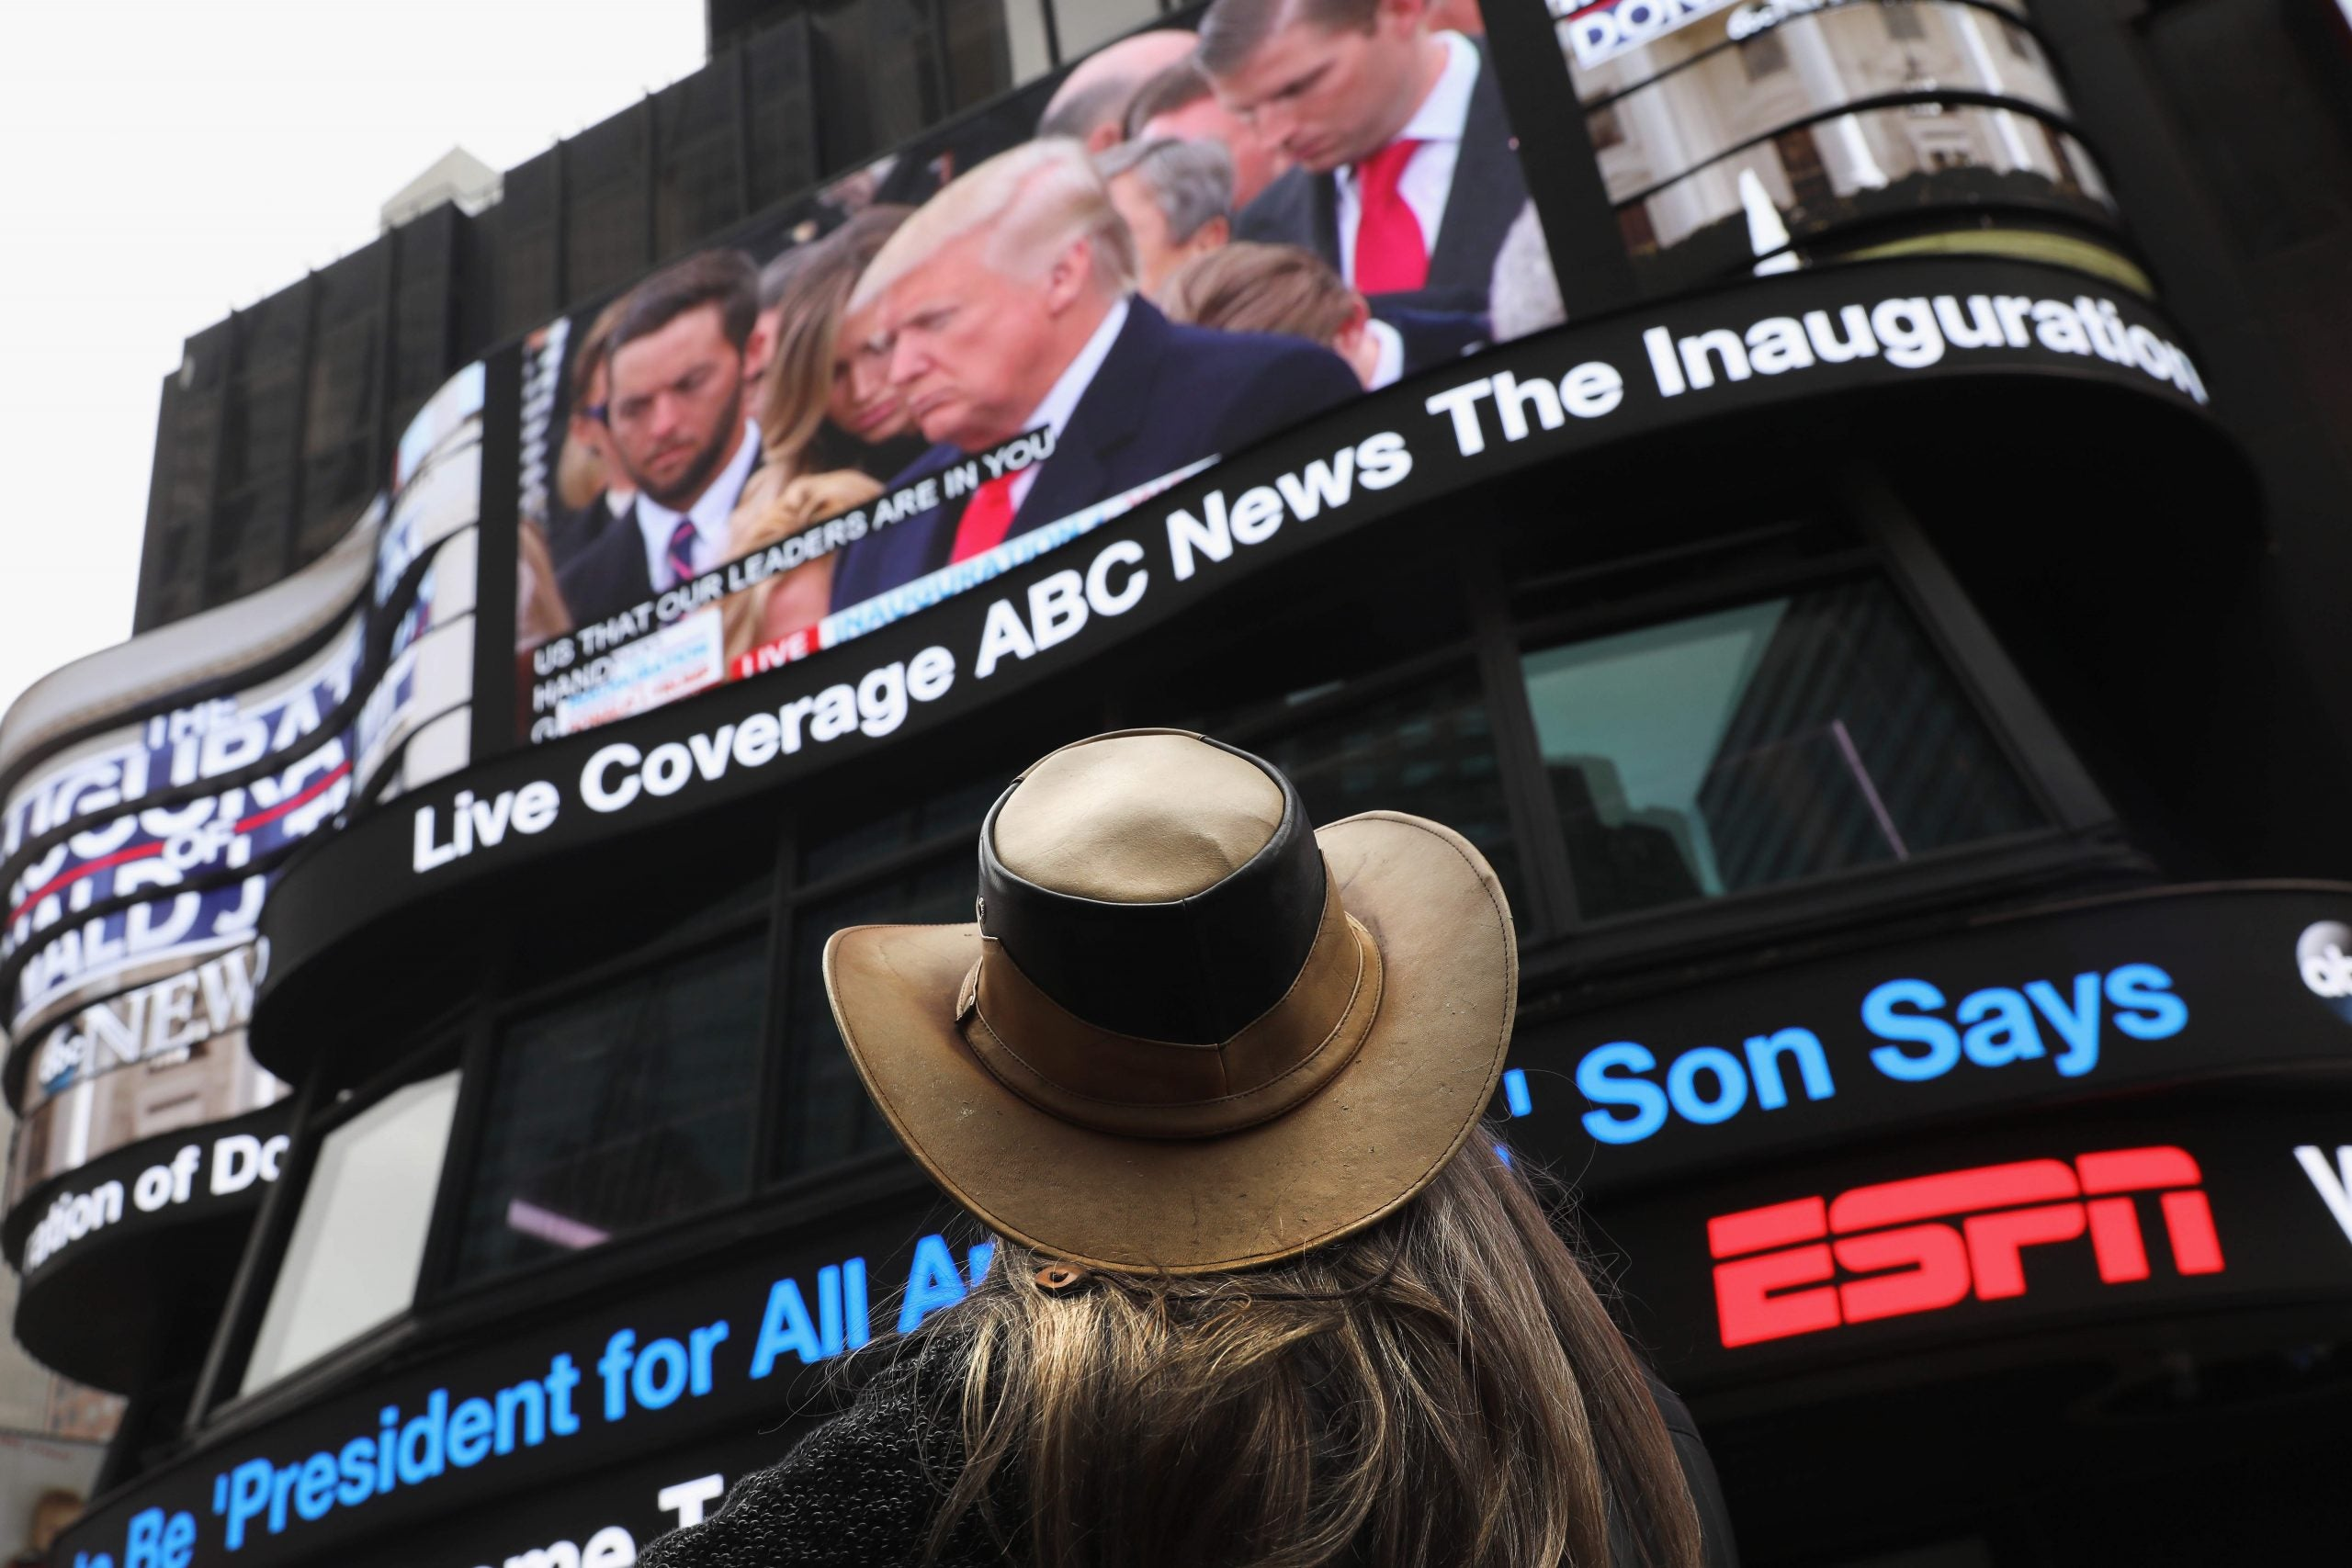 How should journalists respond to Trump? Their response to his inauguration gives some clues